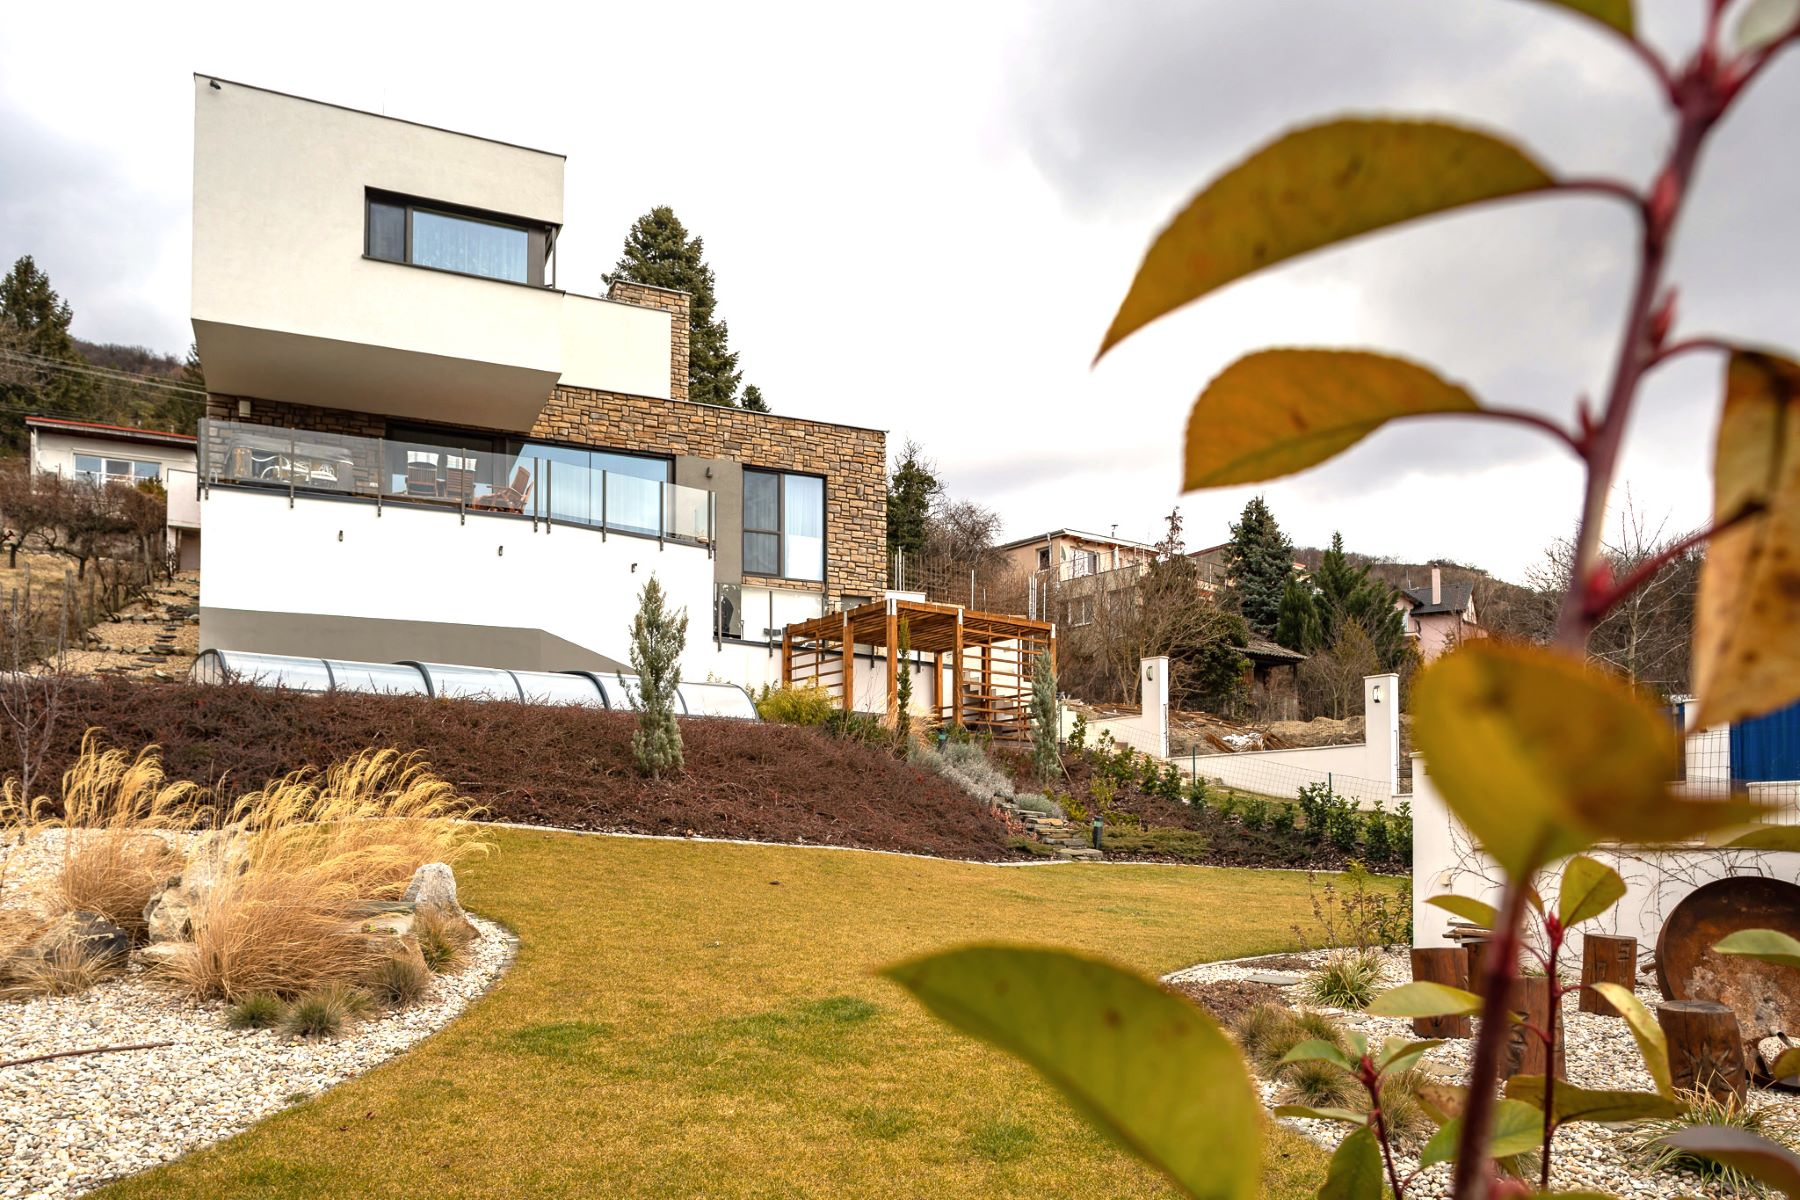 Multi-Family Homes for Sale at A modern family house with a beautiful view of the castle Pod Kobylou 37 Other Slovakia, Other Areas In Slovakia 84110 Slovakia